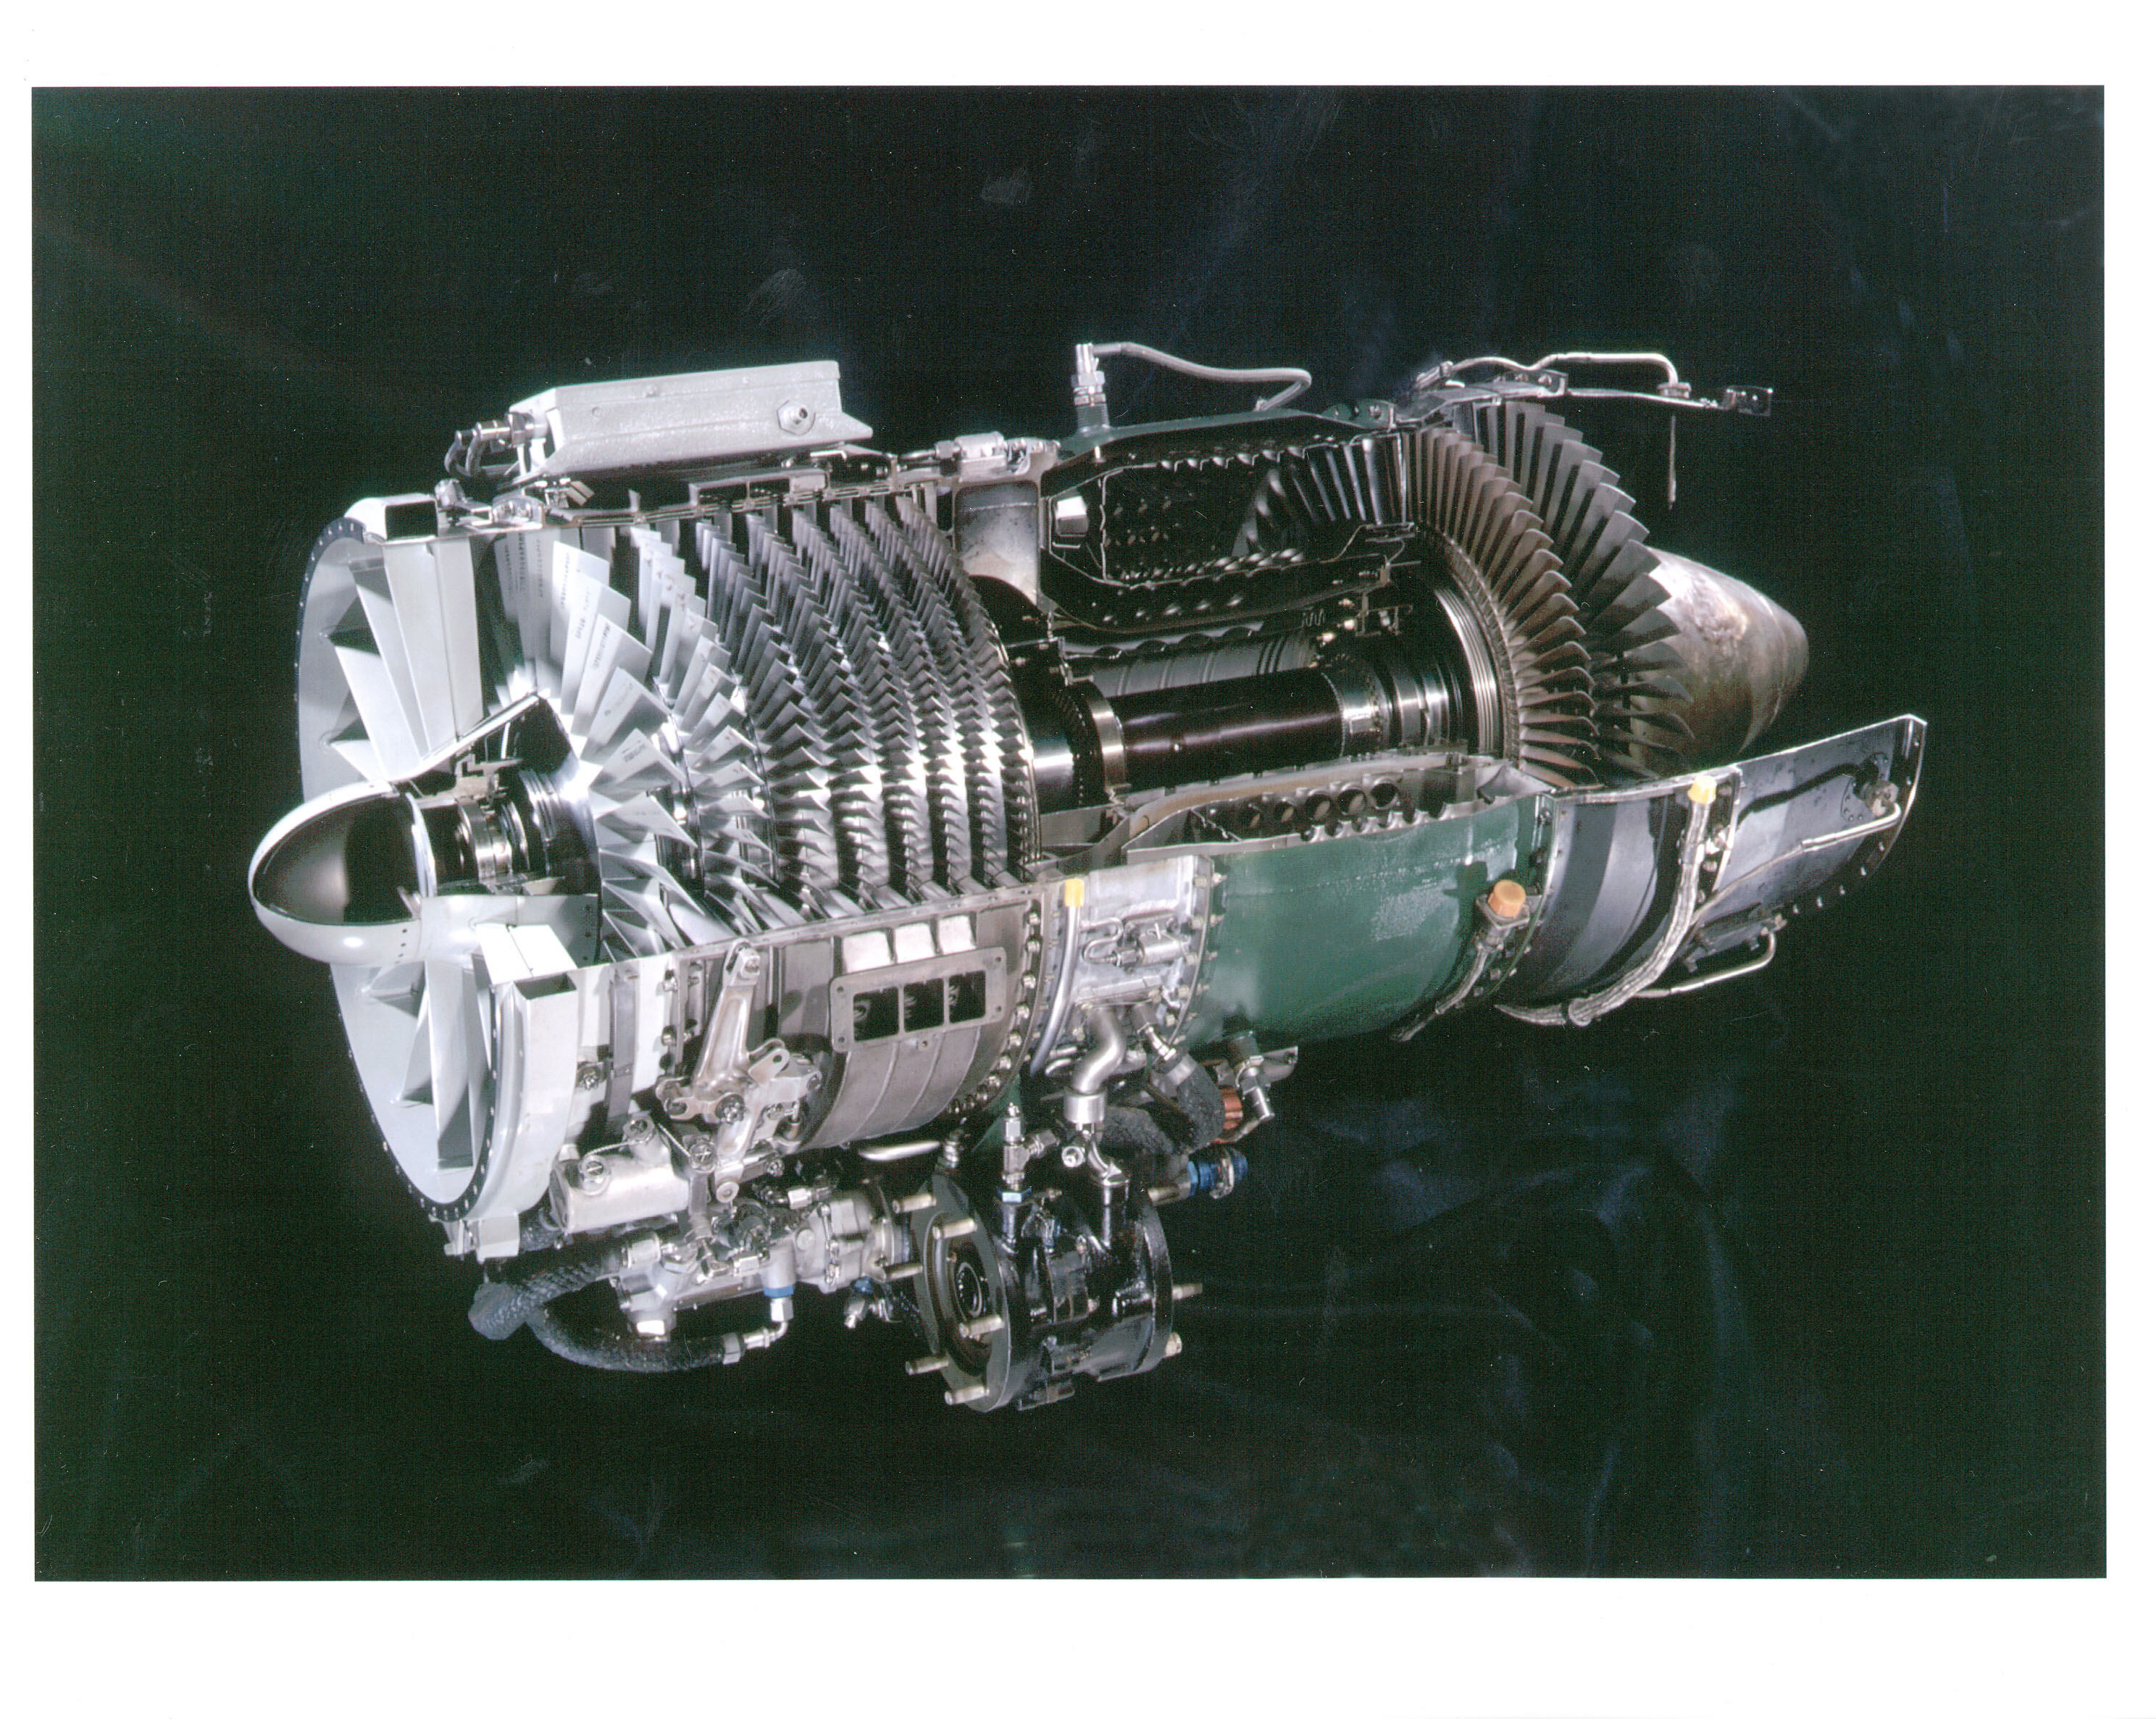 General Electric J85 GE 17A Turbojet Engine Cutaway